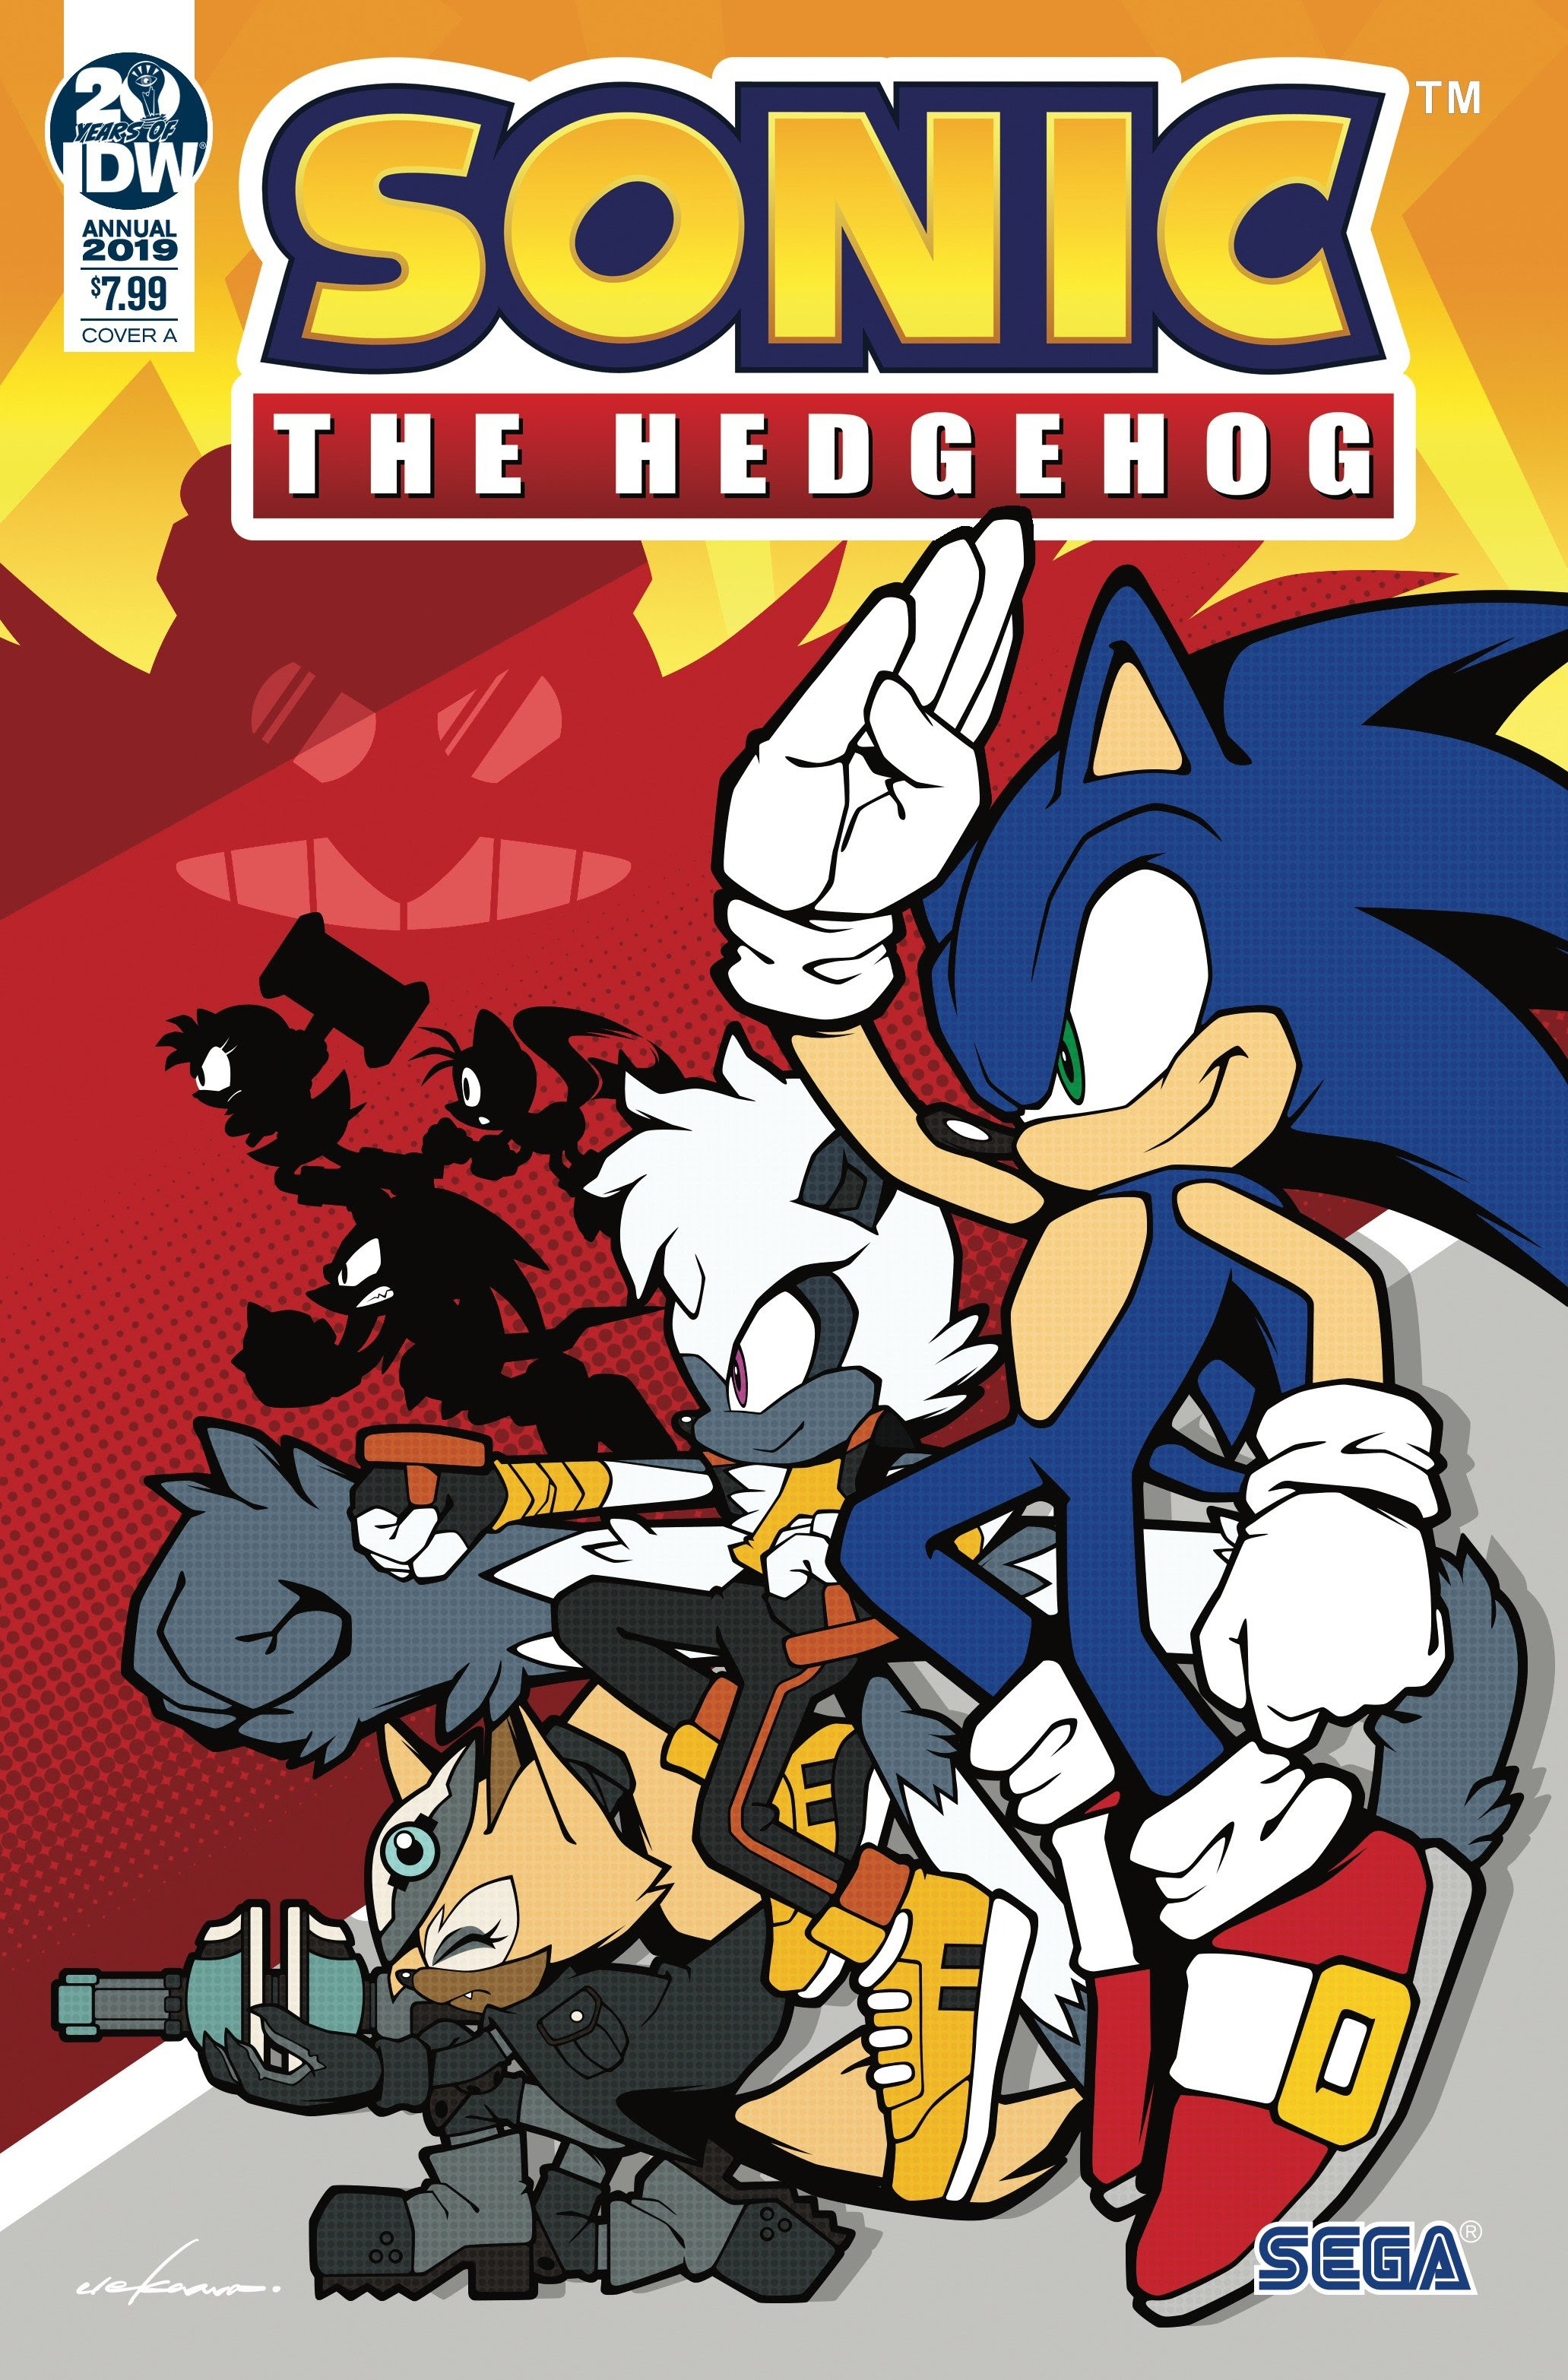 Sonic The Hedgehog Comic Books Build Momentum With Sold Out Annual And Ongoing Series Pop Culture Network